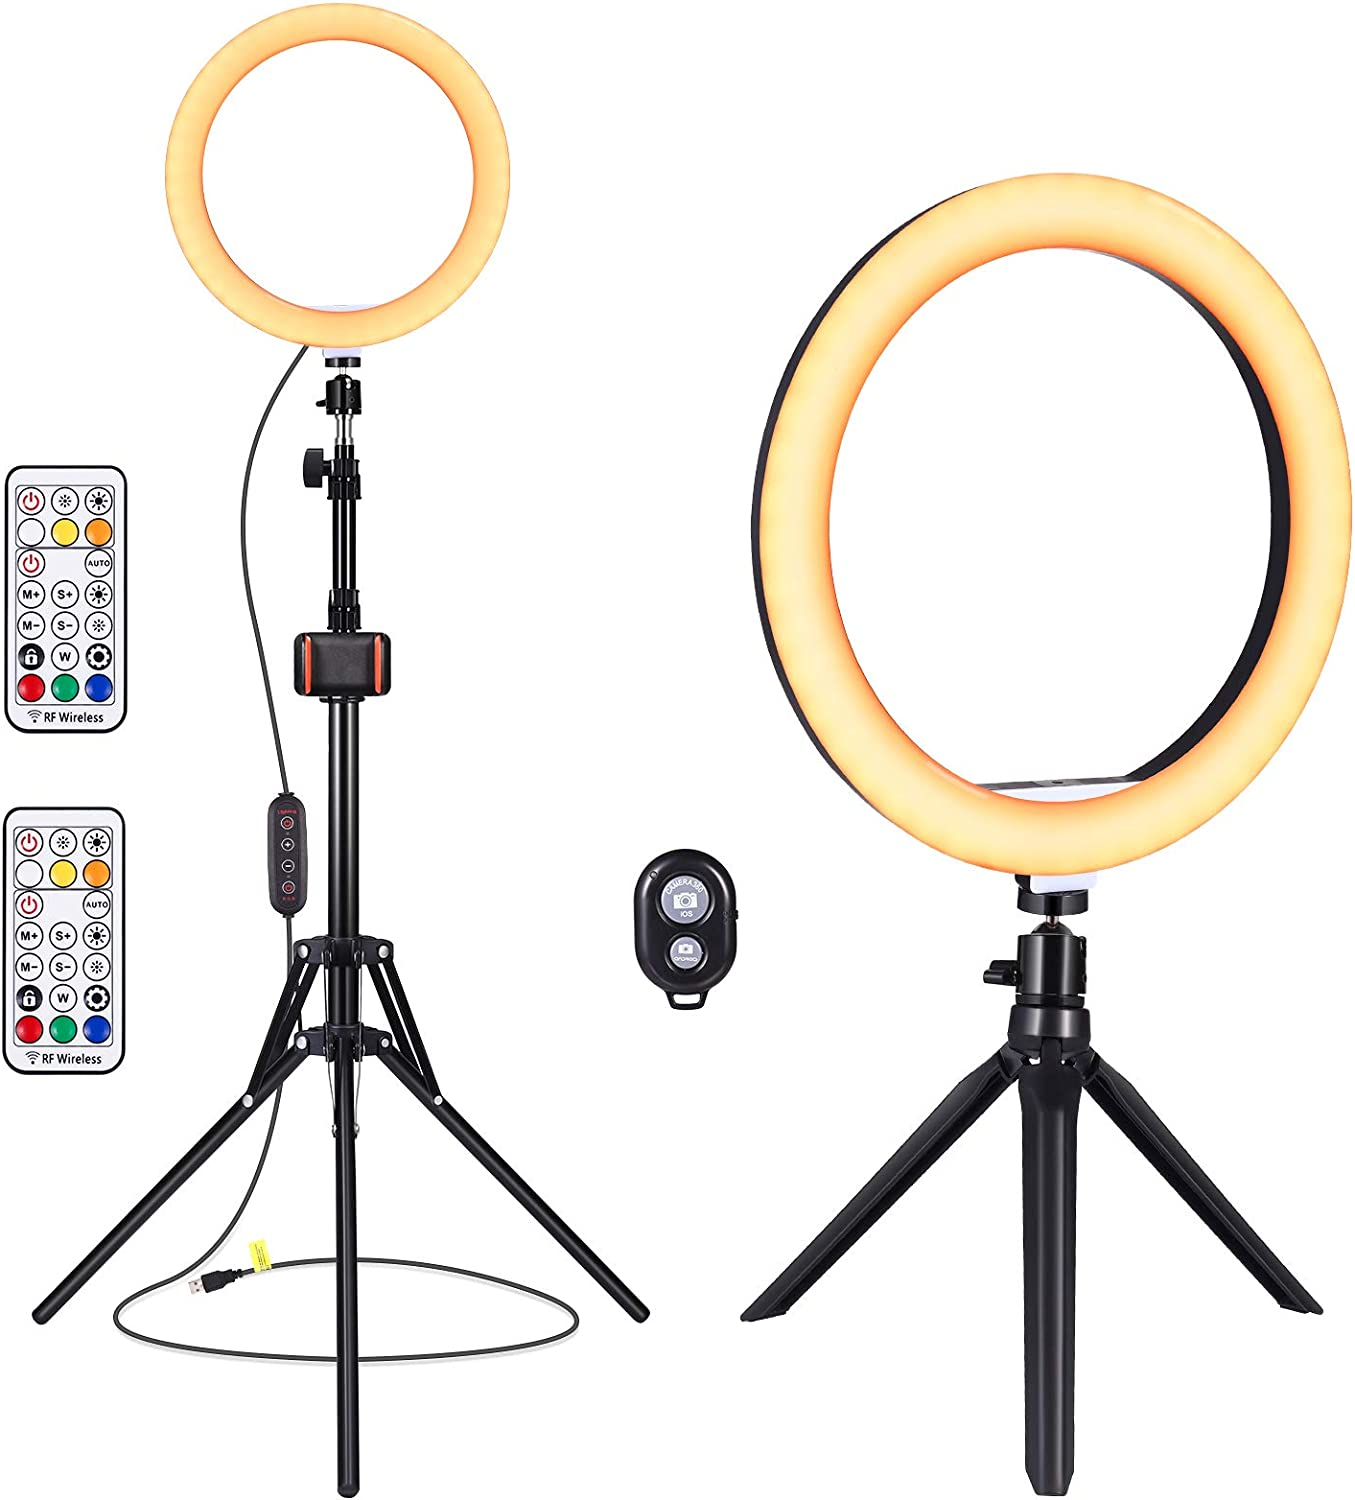 "10"" Selfie Ring Light - YUNLIGHTS Ring Light with Stand & Remote Control & Phone Holder & Camera Remote, Dimmable Makeup Magic Light with Desktop Stand for Live Stream/Photography iPhone Android"